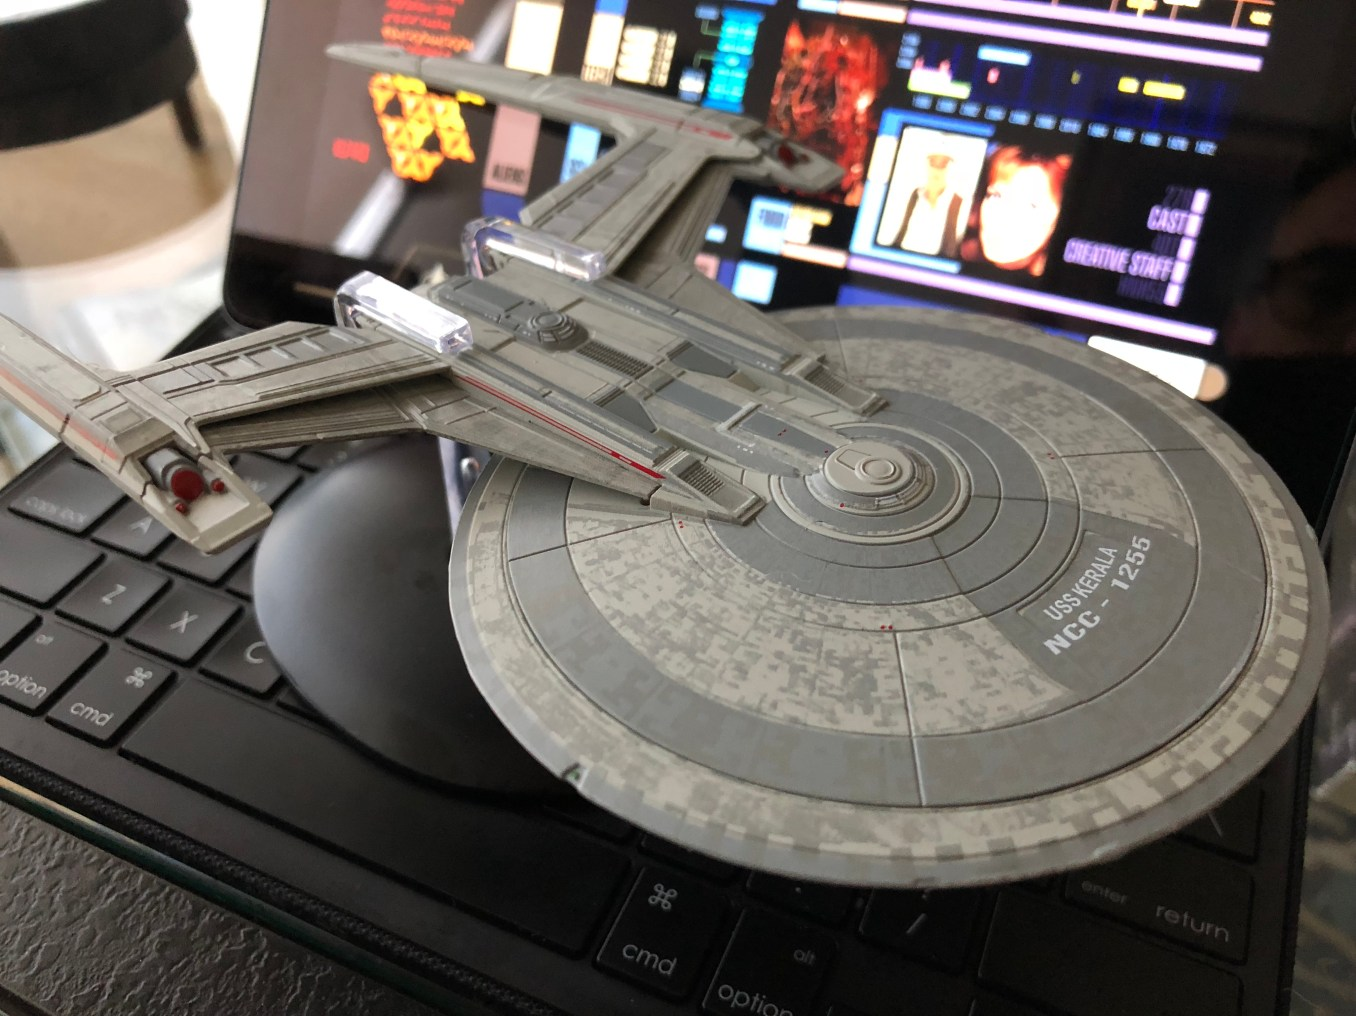 This is the third issue in the STAR TREK: DISCOVERY series of models from Eaglemoss.